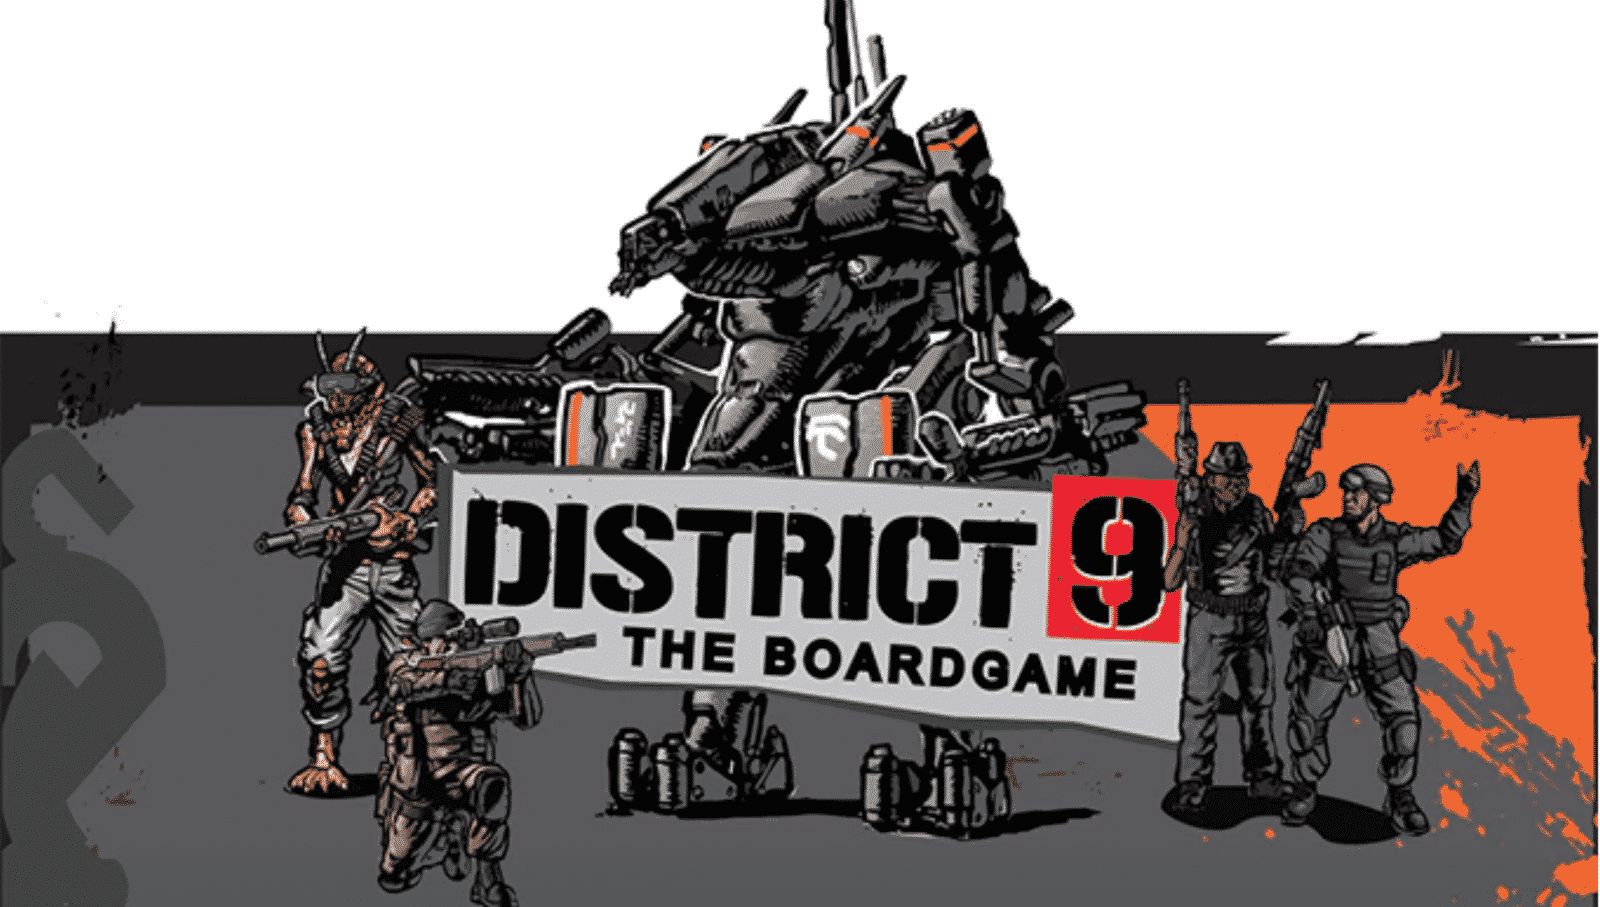 District 9 Board Game